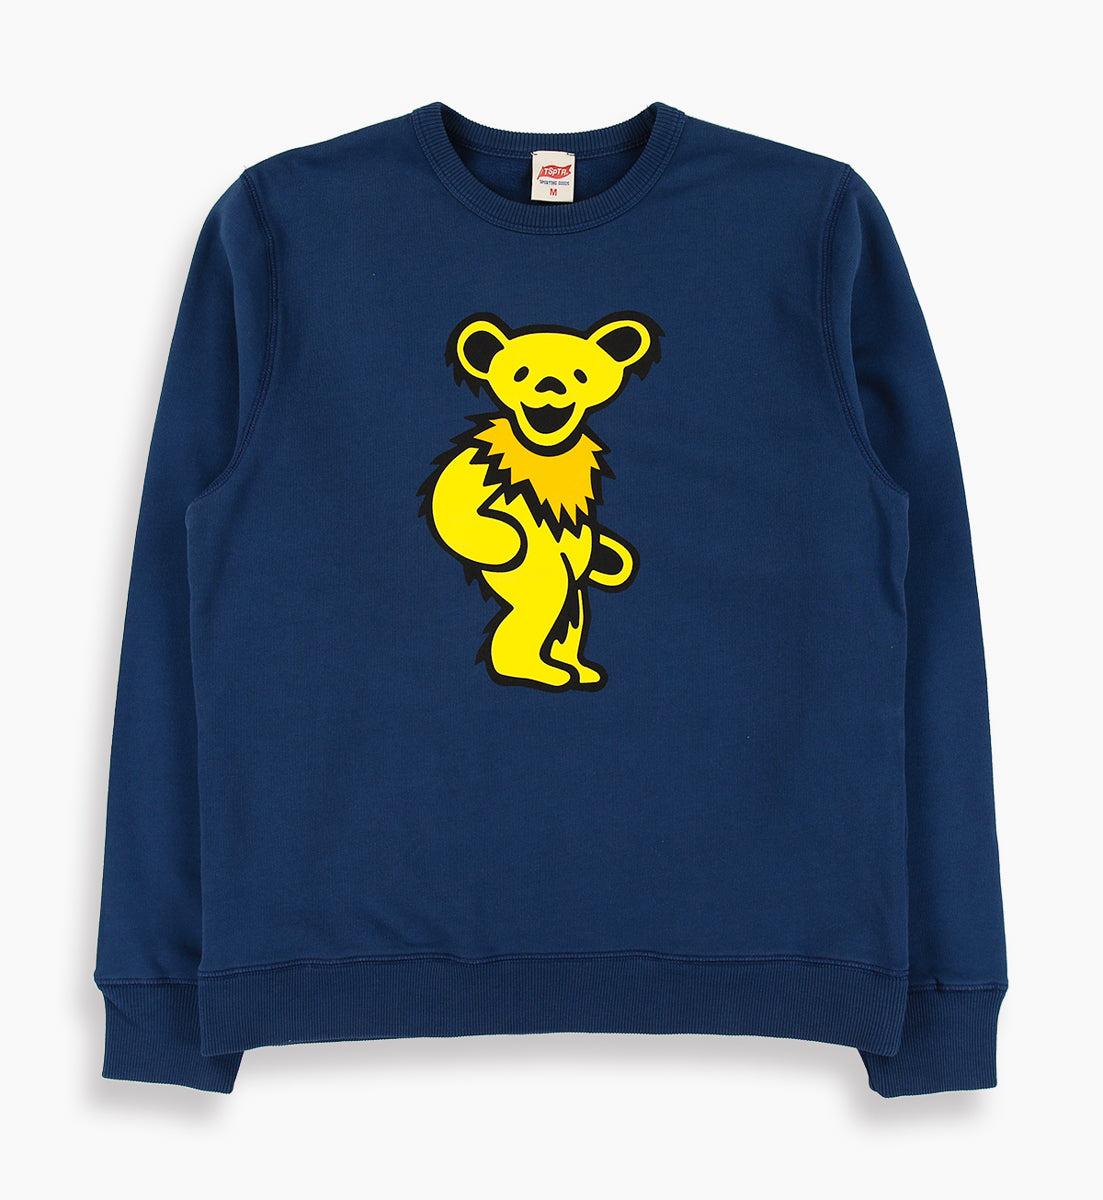 STEAL YOUR BEAR SWEATSHIRT